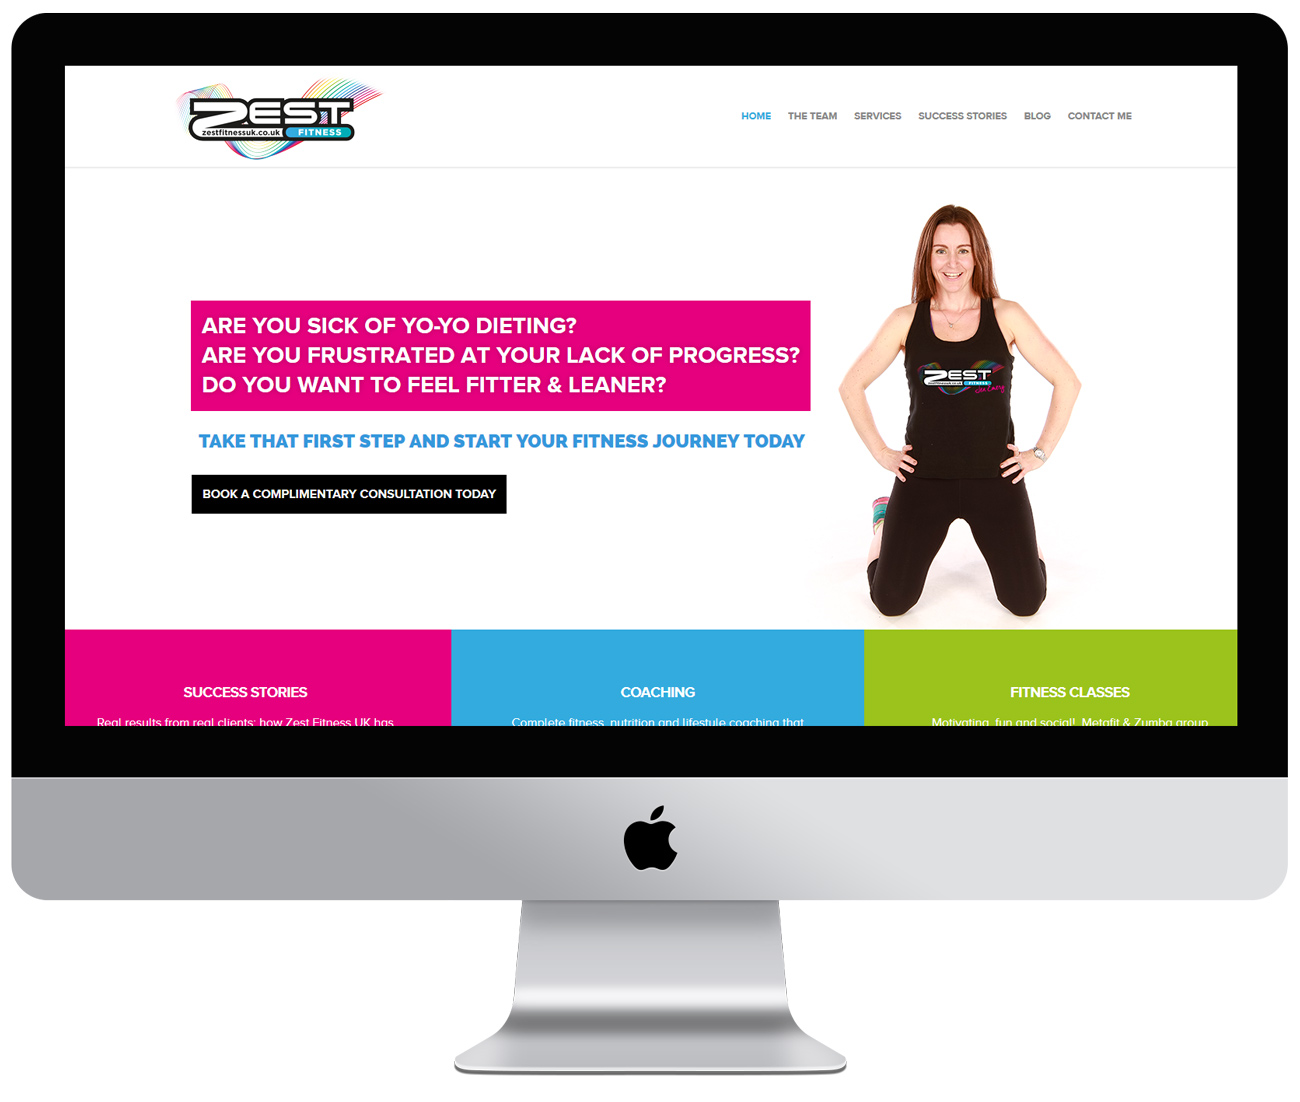 Zest Fitness UK website